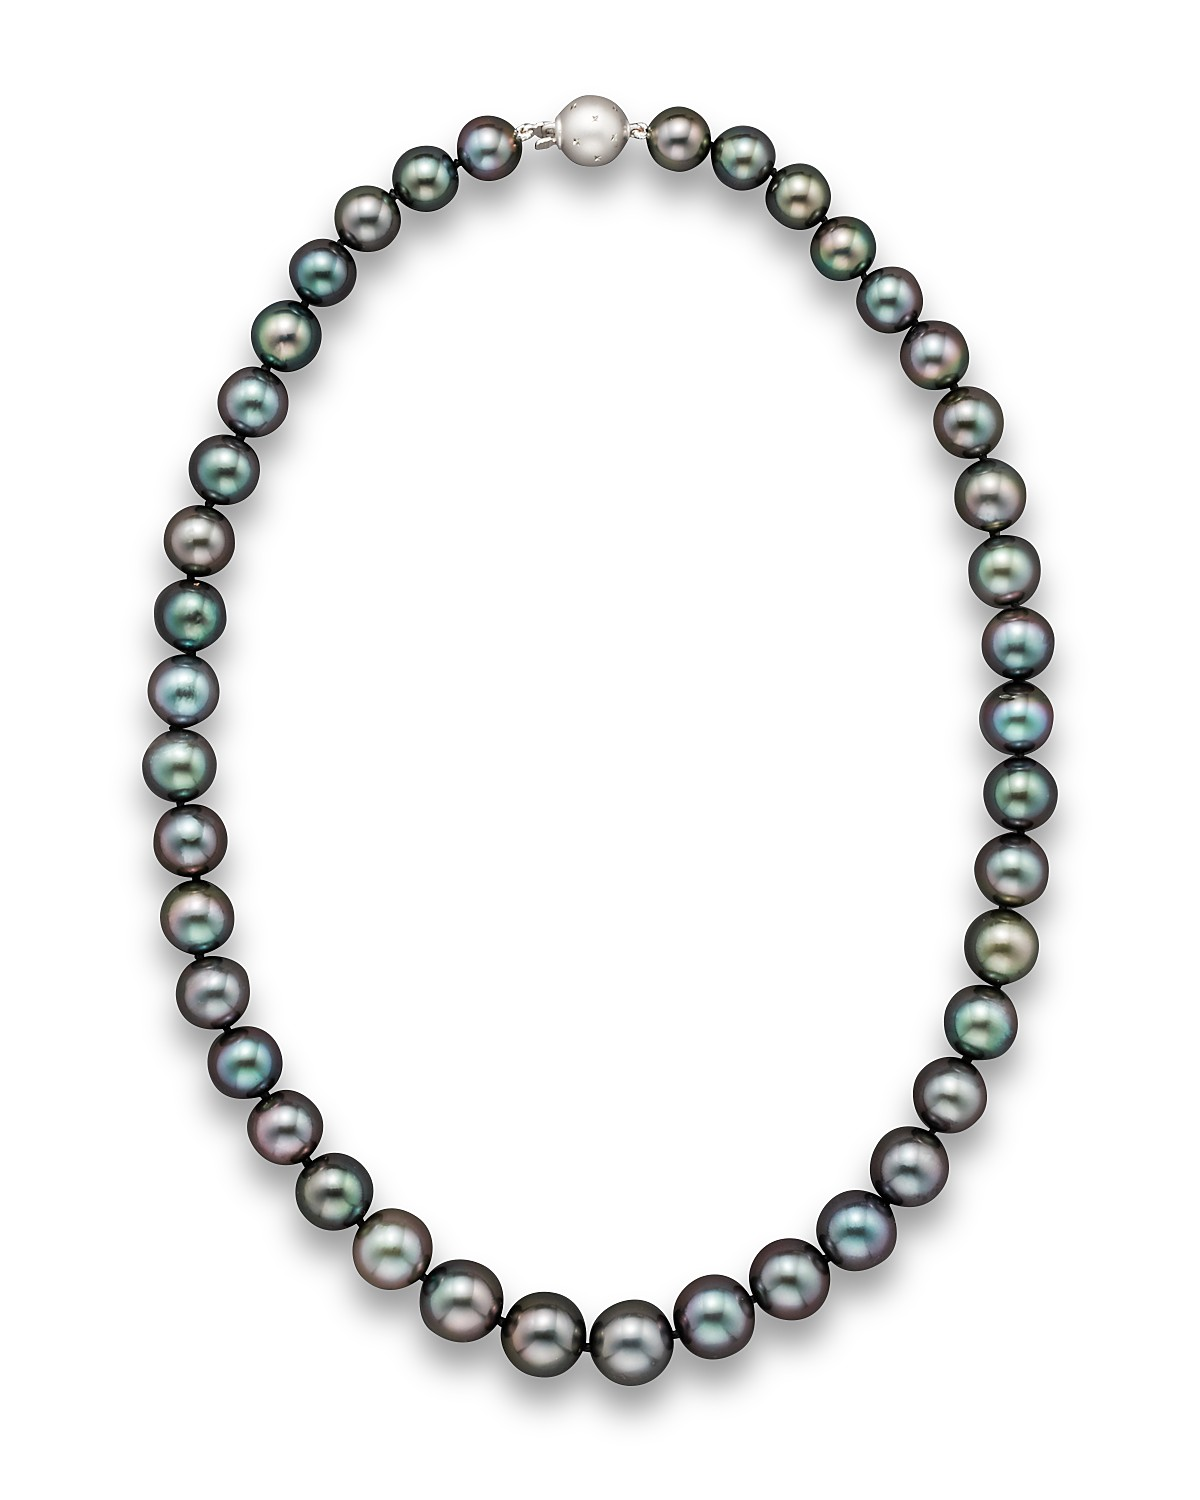 Tahitian black pearl necklace 18 bloomingdales pdpimgshortdescription aloadofball Image collections